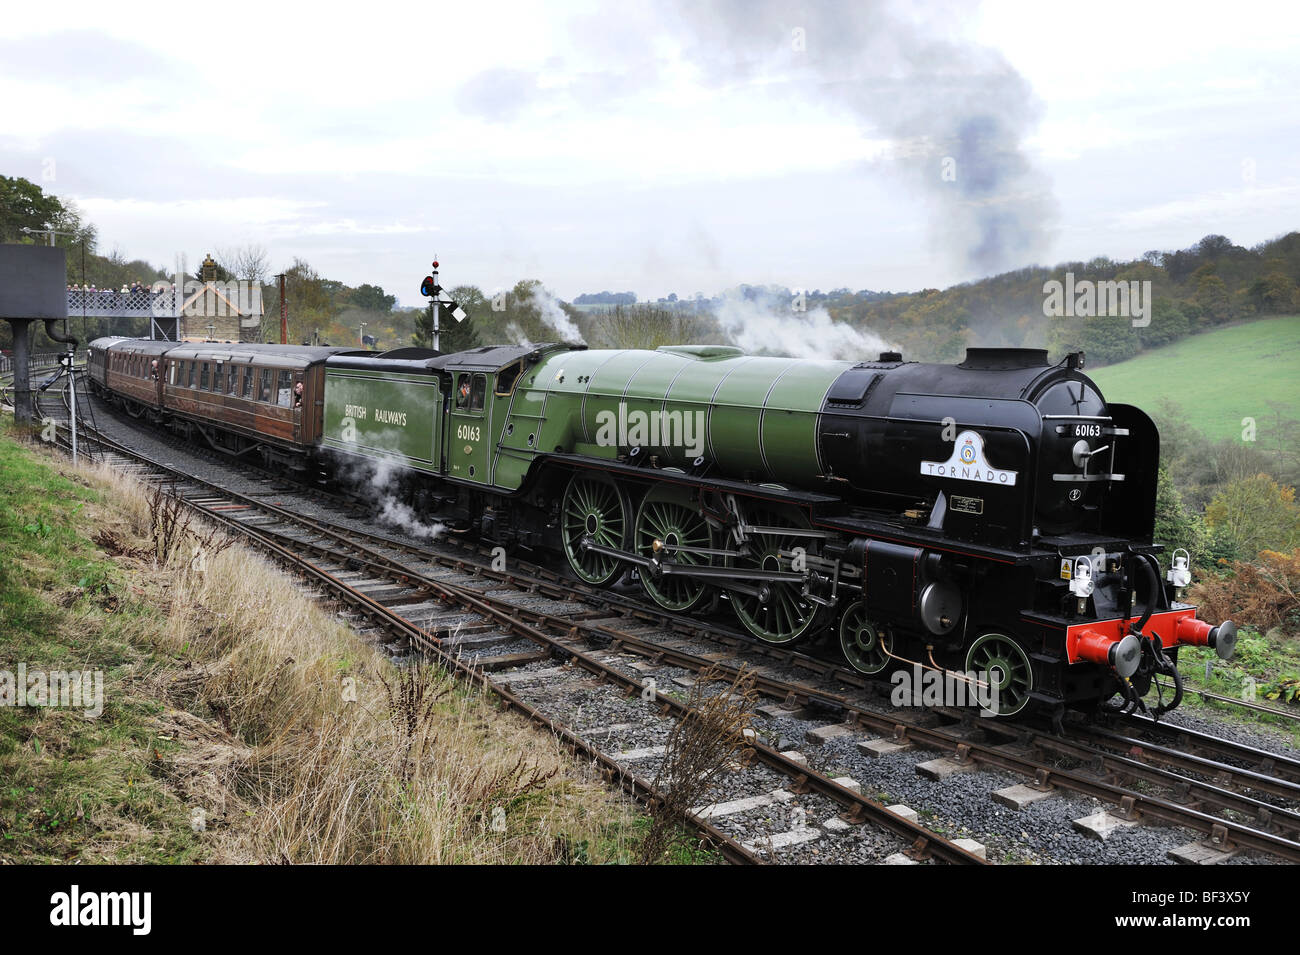 Newly built steam locomotive, Tornado, at Highley Station on the Severn Valley Railway 2009 - Stock Image